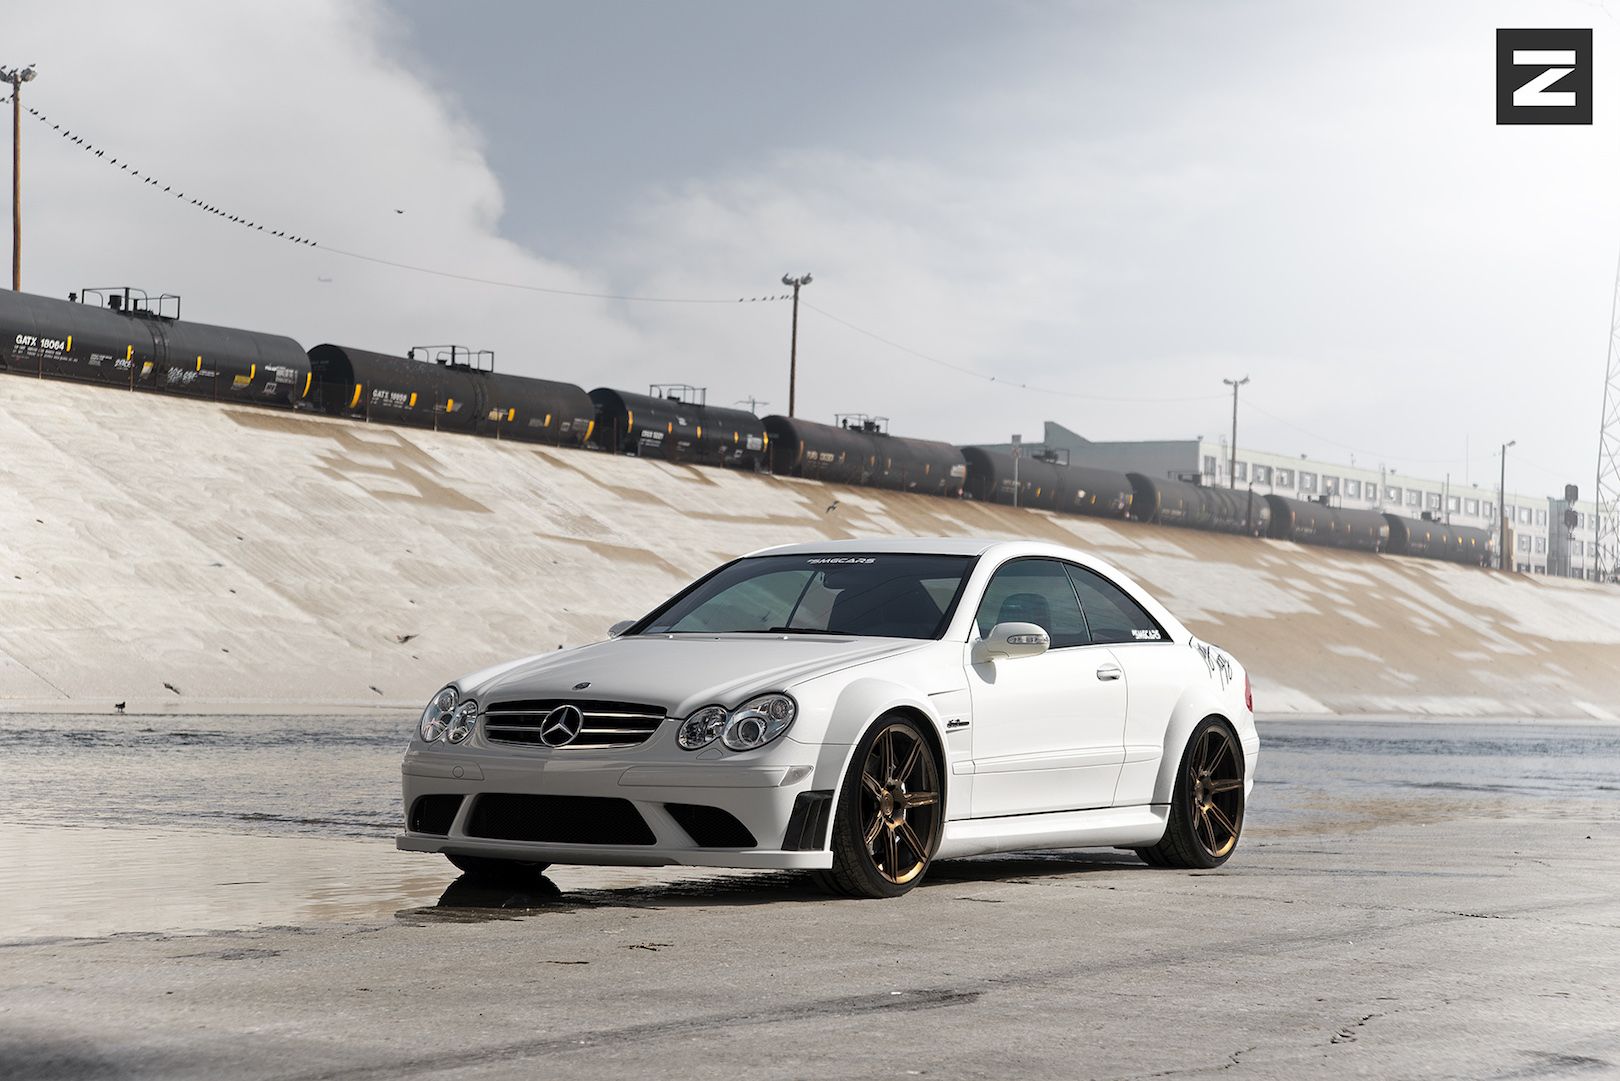 Mercedes Benz CLK63 AMG White Bronze ZS07